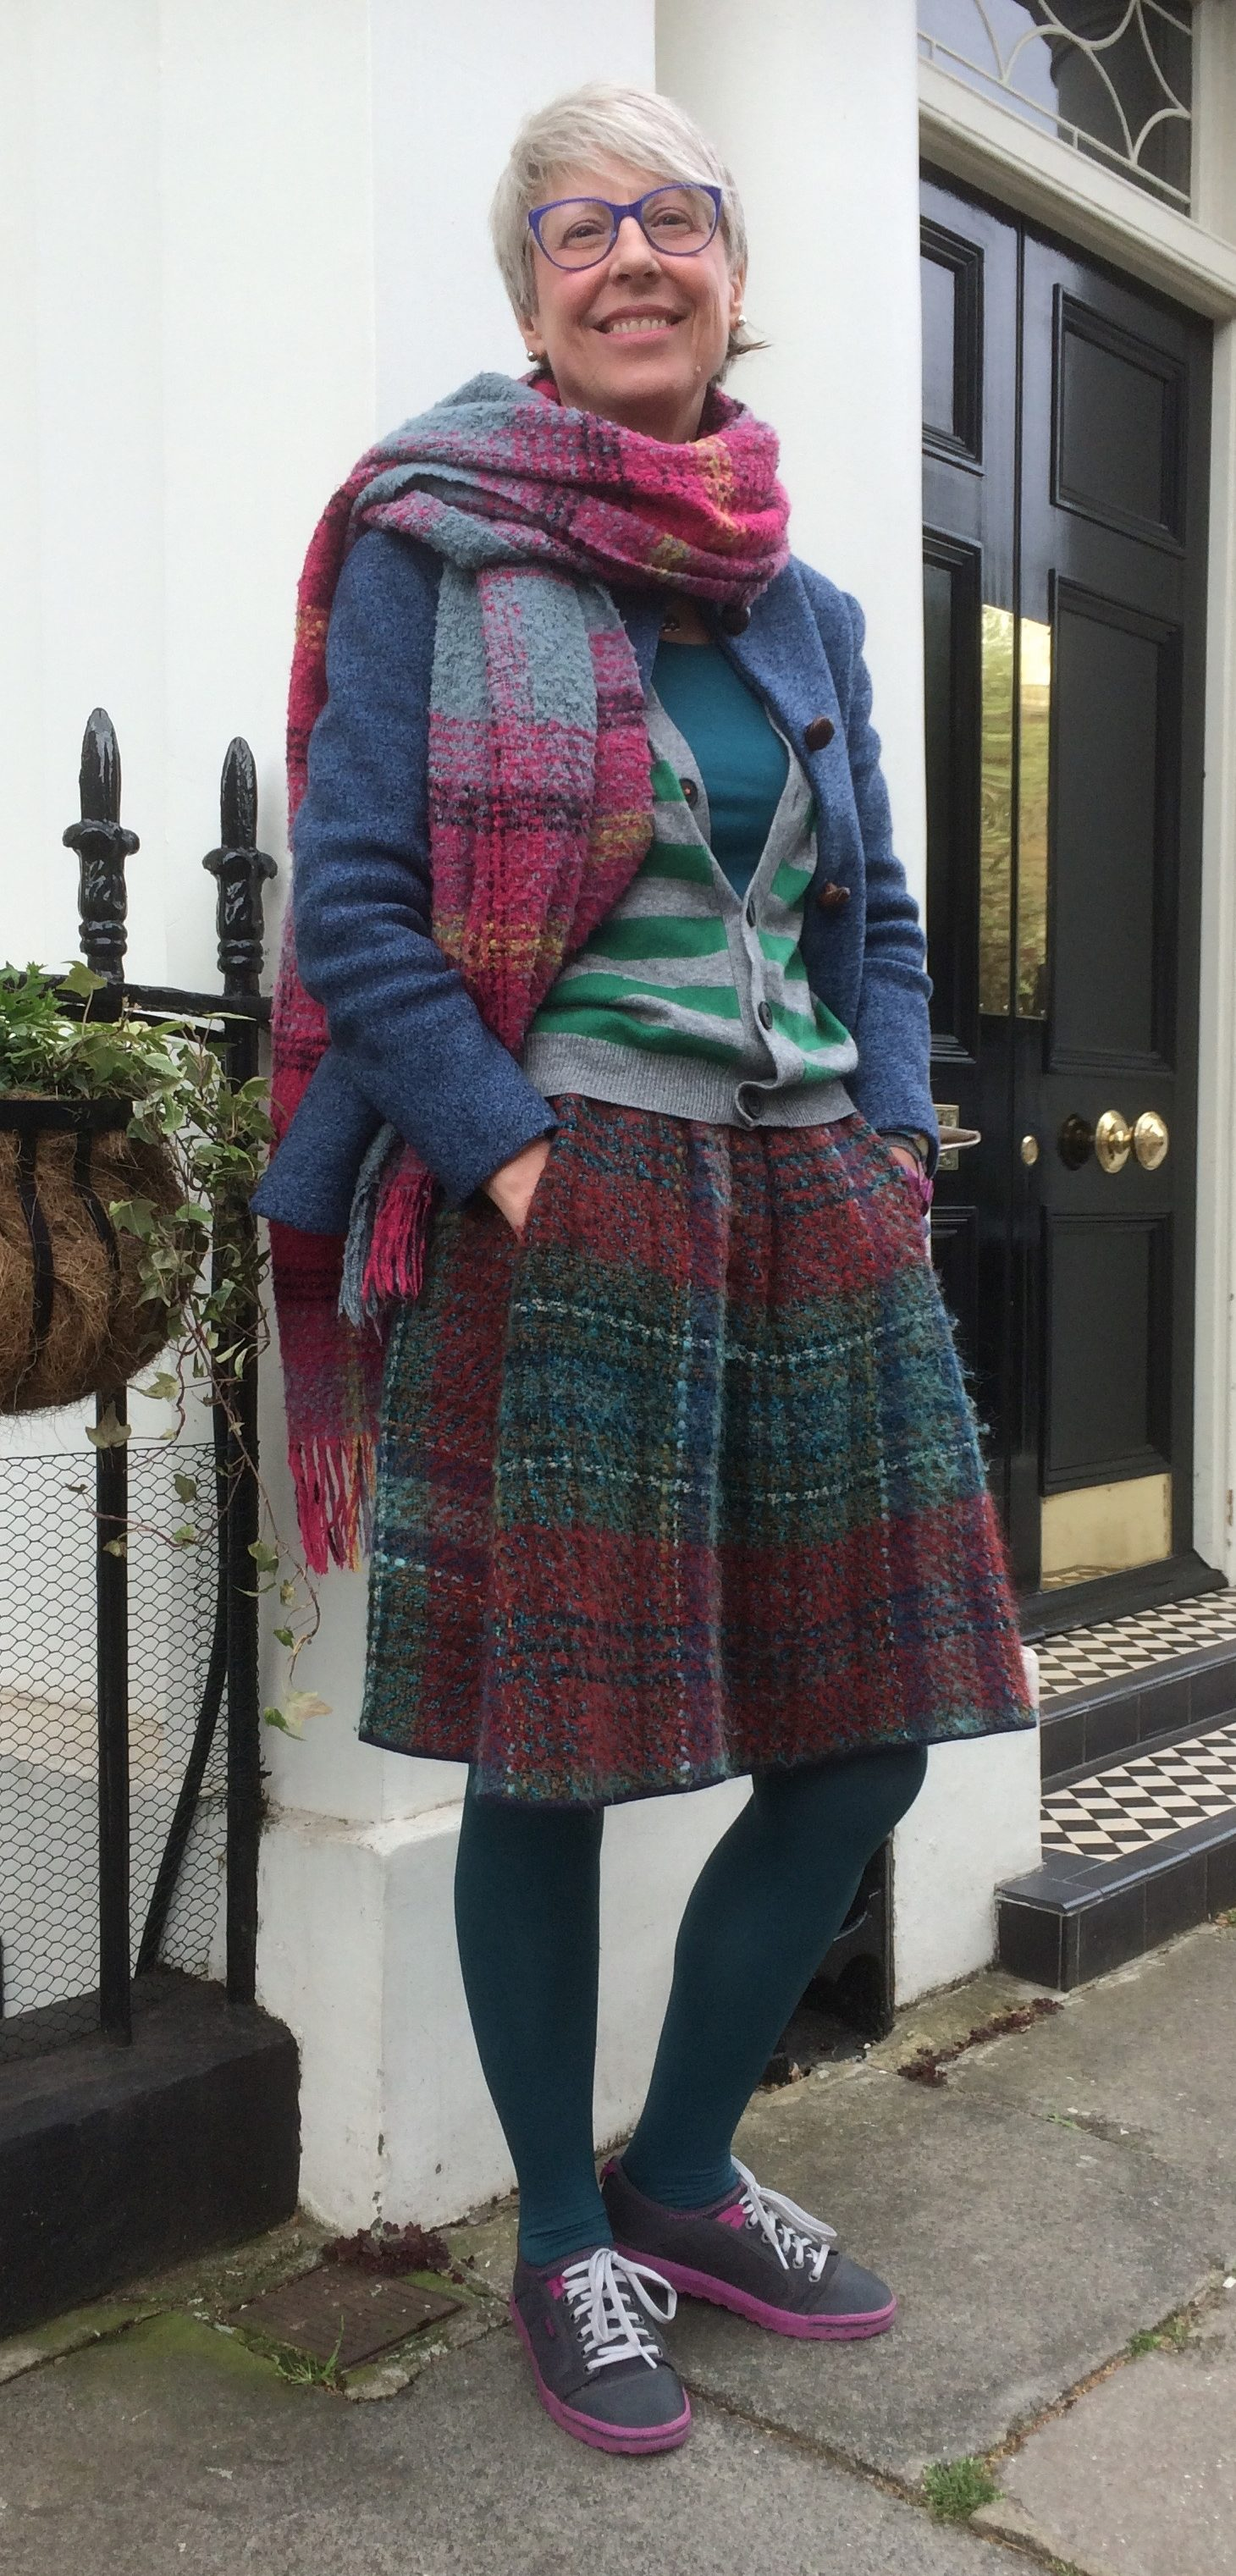 2. 1960s wool skirt and 1969 jacket in boiled wool